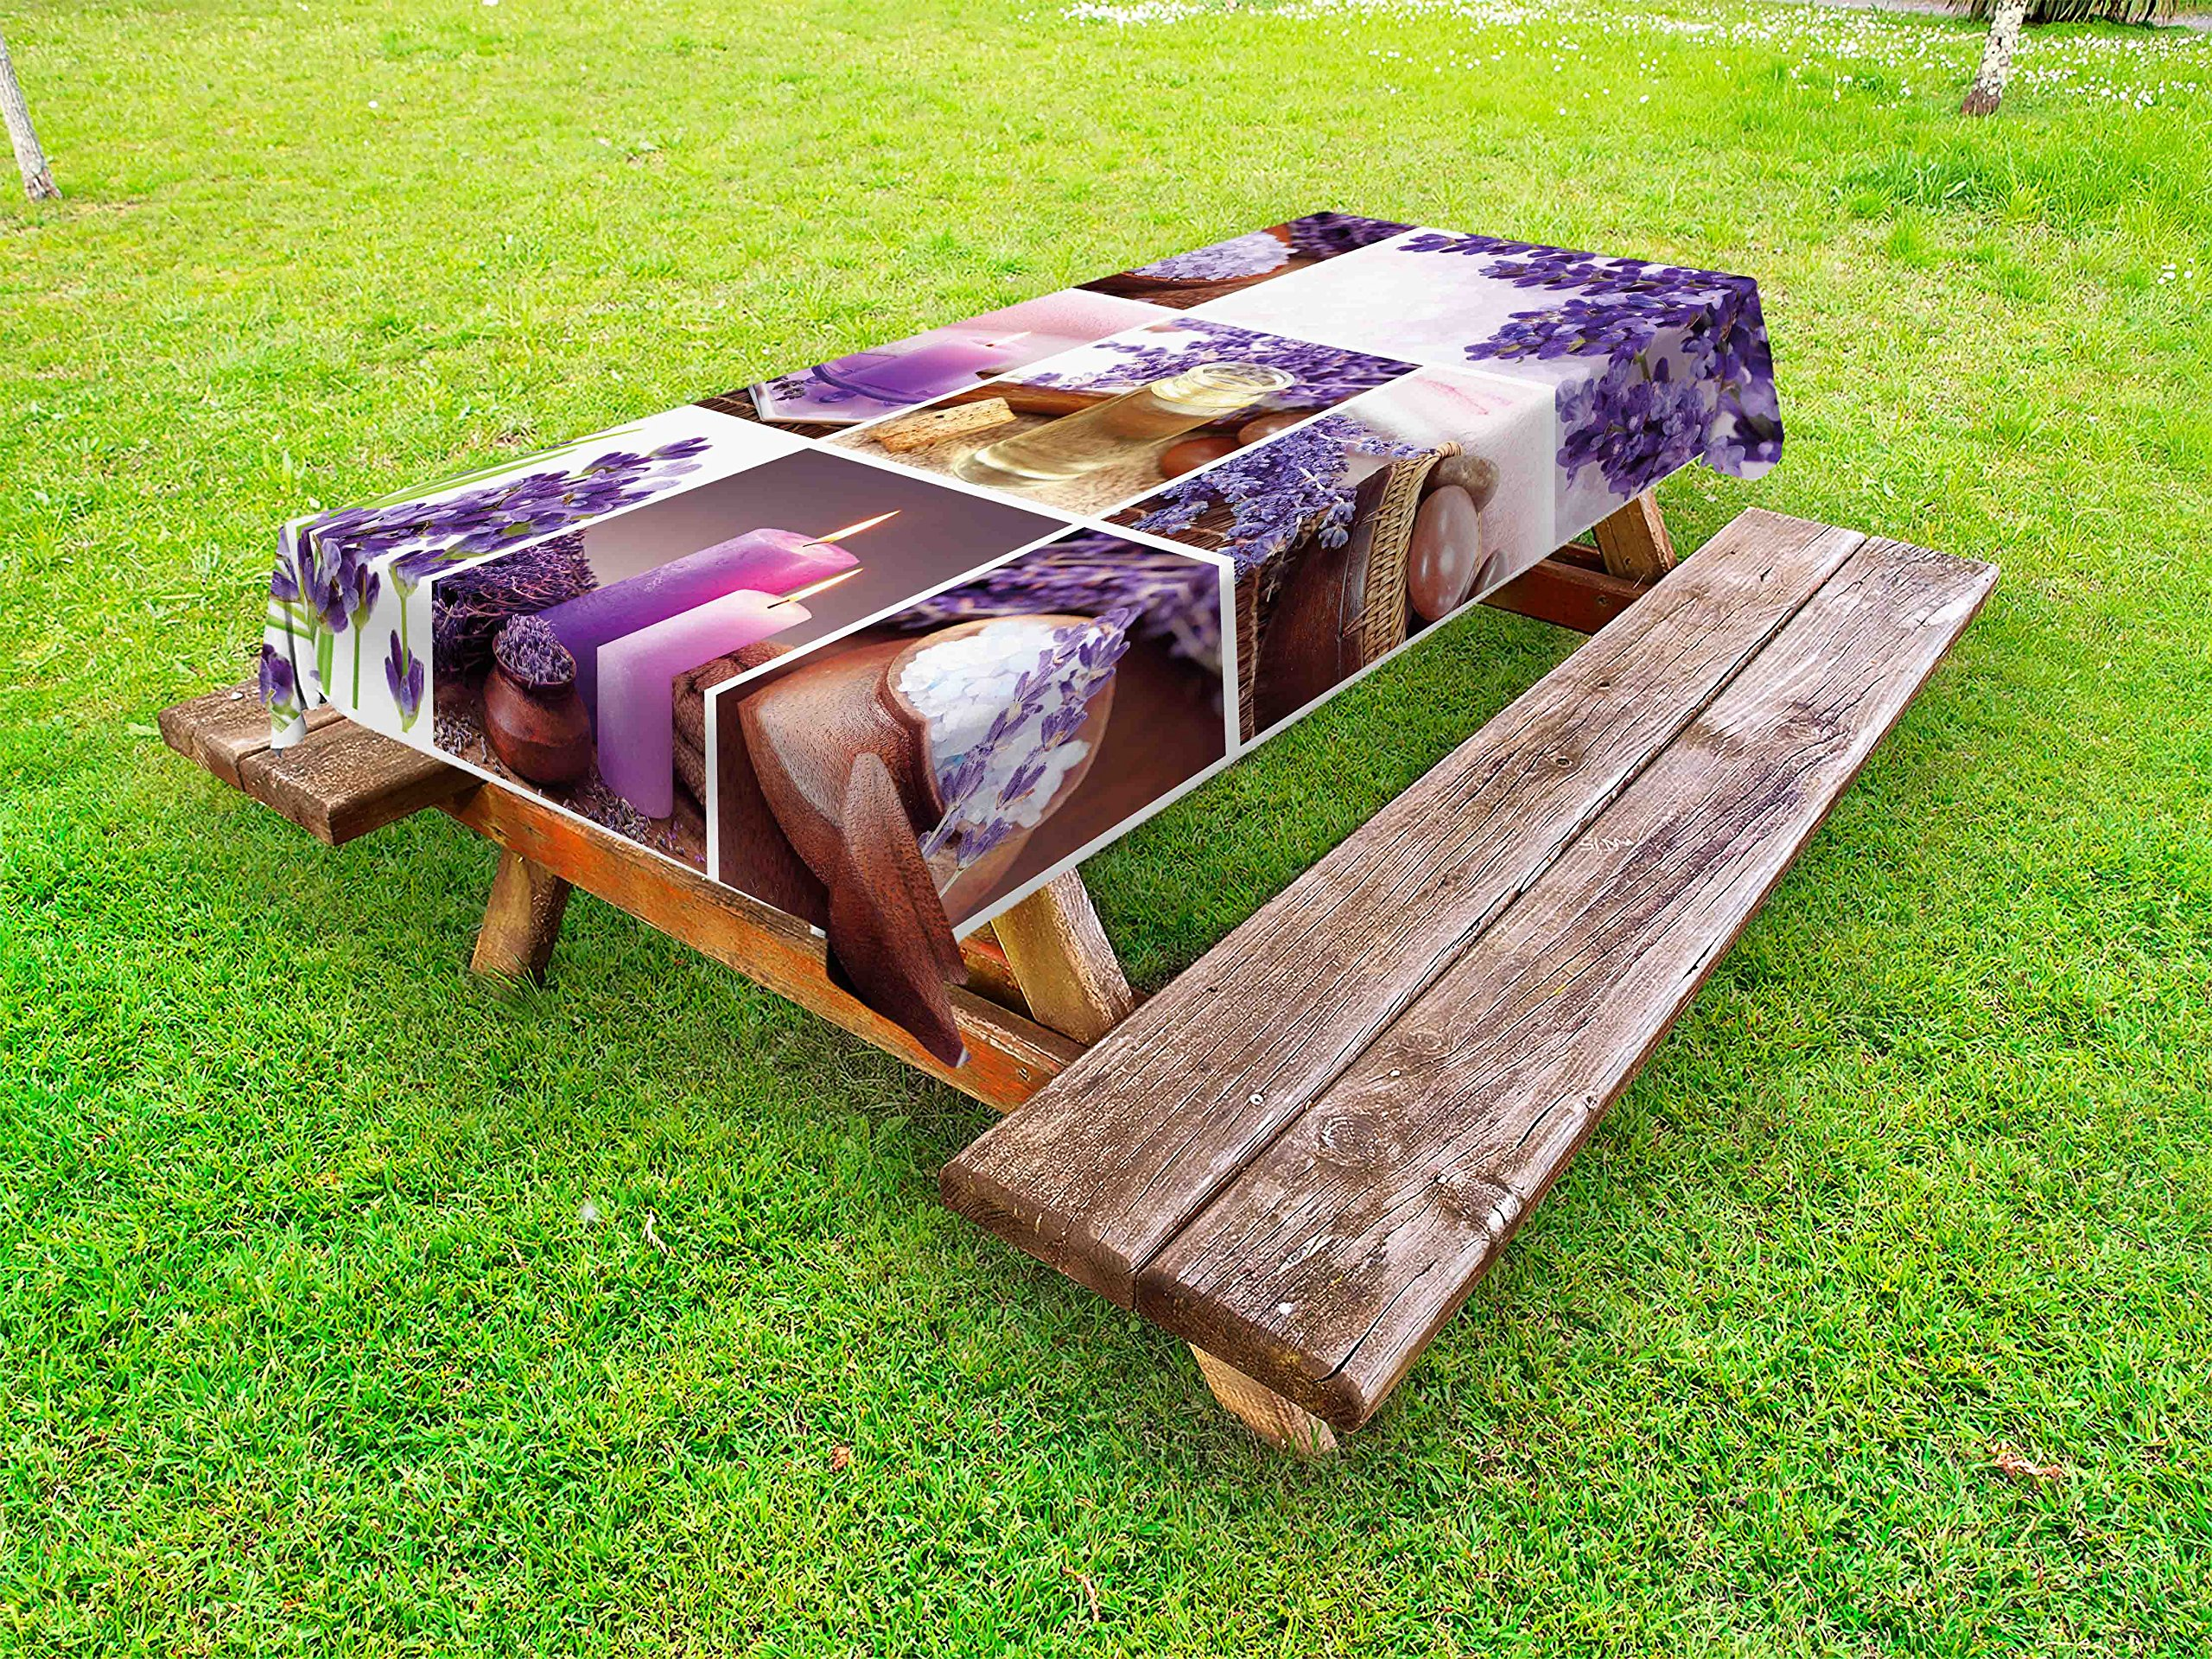 Lunarable Spa Outdoor Tablecloth, Lavender Garden Alike Themed Relaxing Candles Stones Herbal Salt Elements Image, Decorative Washable Picnic Table Cloth, 58 X 120 inches, Purple and White